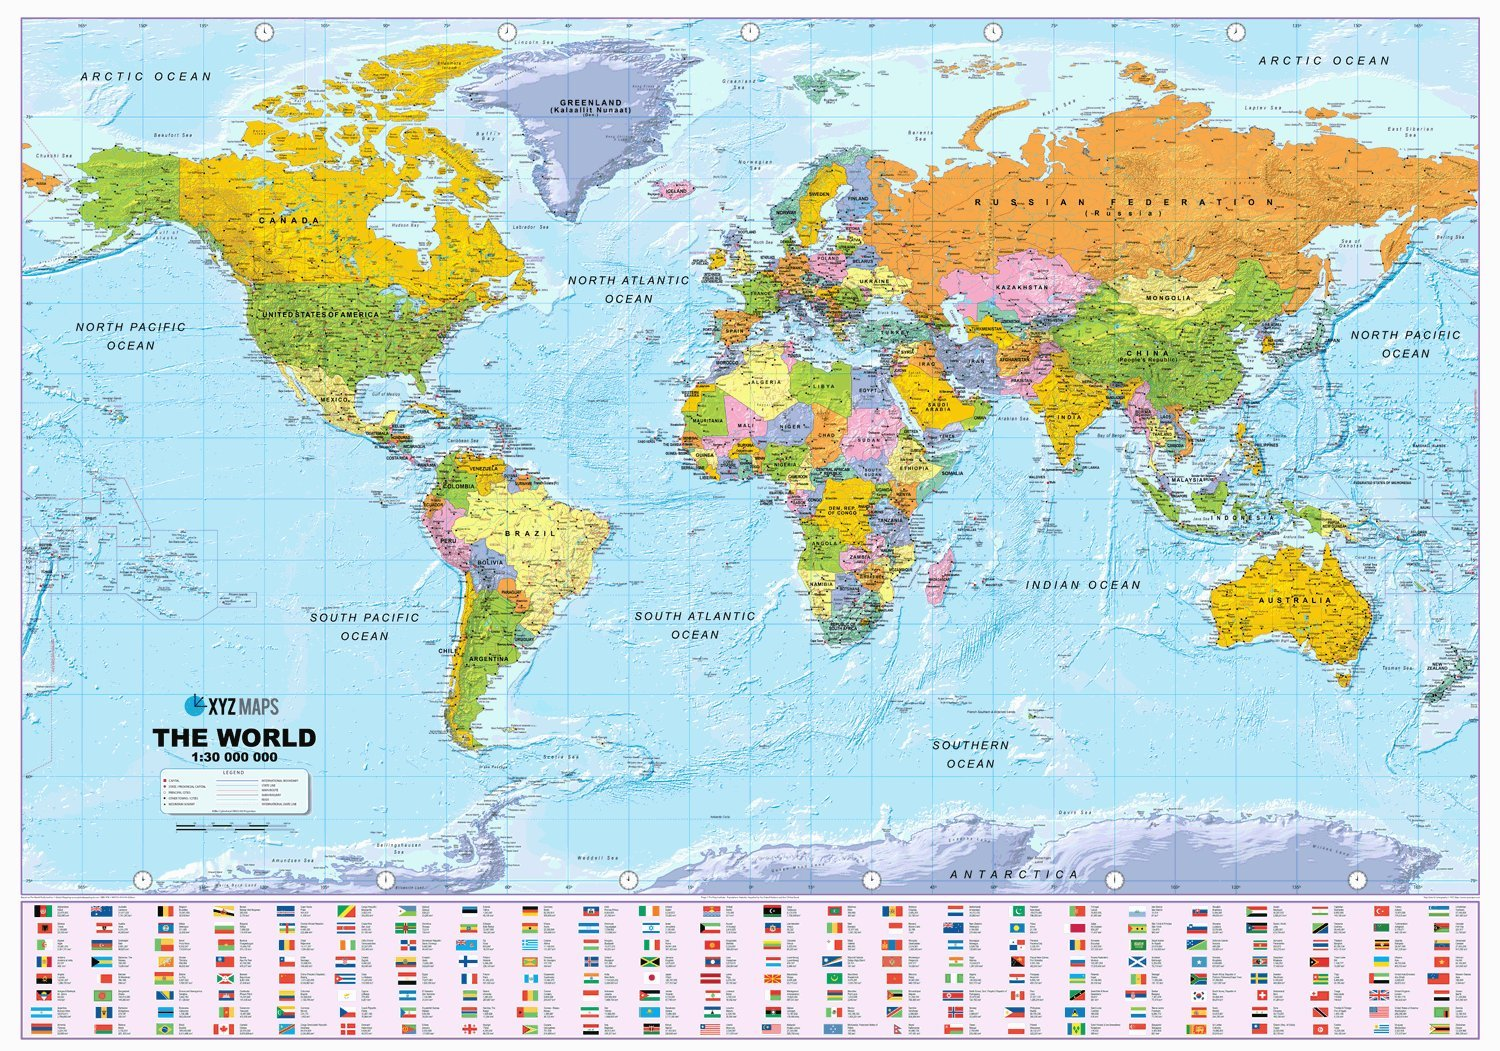 scale map of world Buy Scottish World Map Political 1 30m Scale Plastic Coated Wall Map Book Online At Low Prices In India Scottish World Map Political 1 30m Scale Plastic Coated Wall Map Reviews